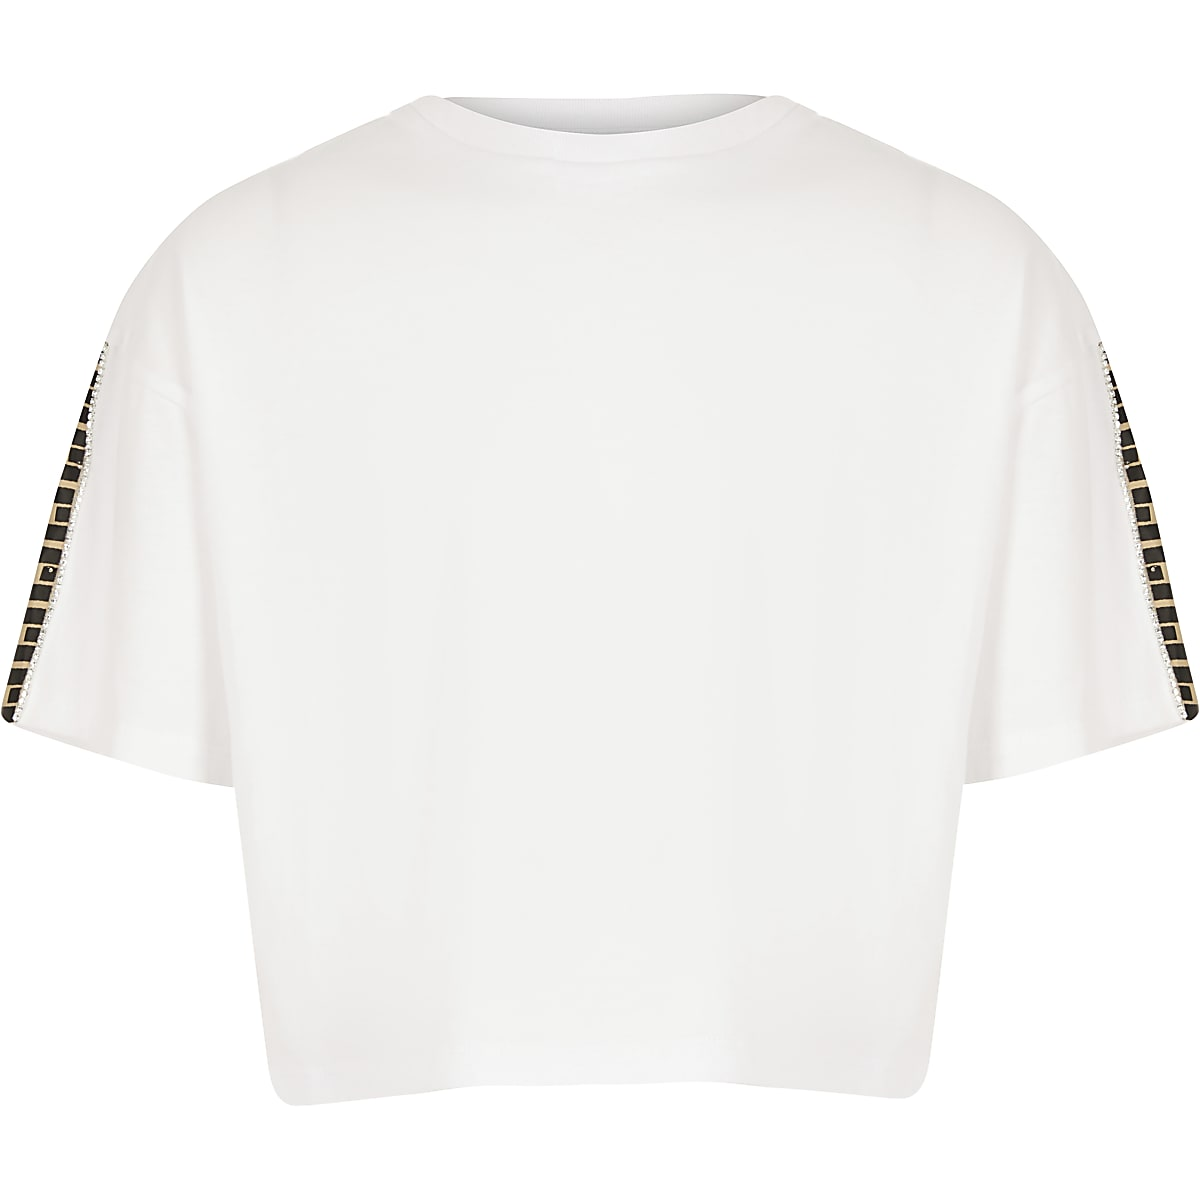 Girls white RI trim crop top